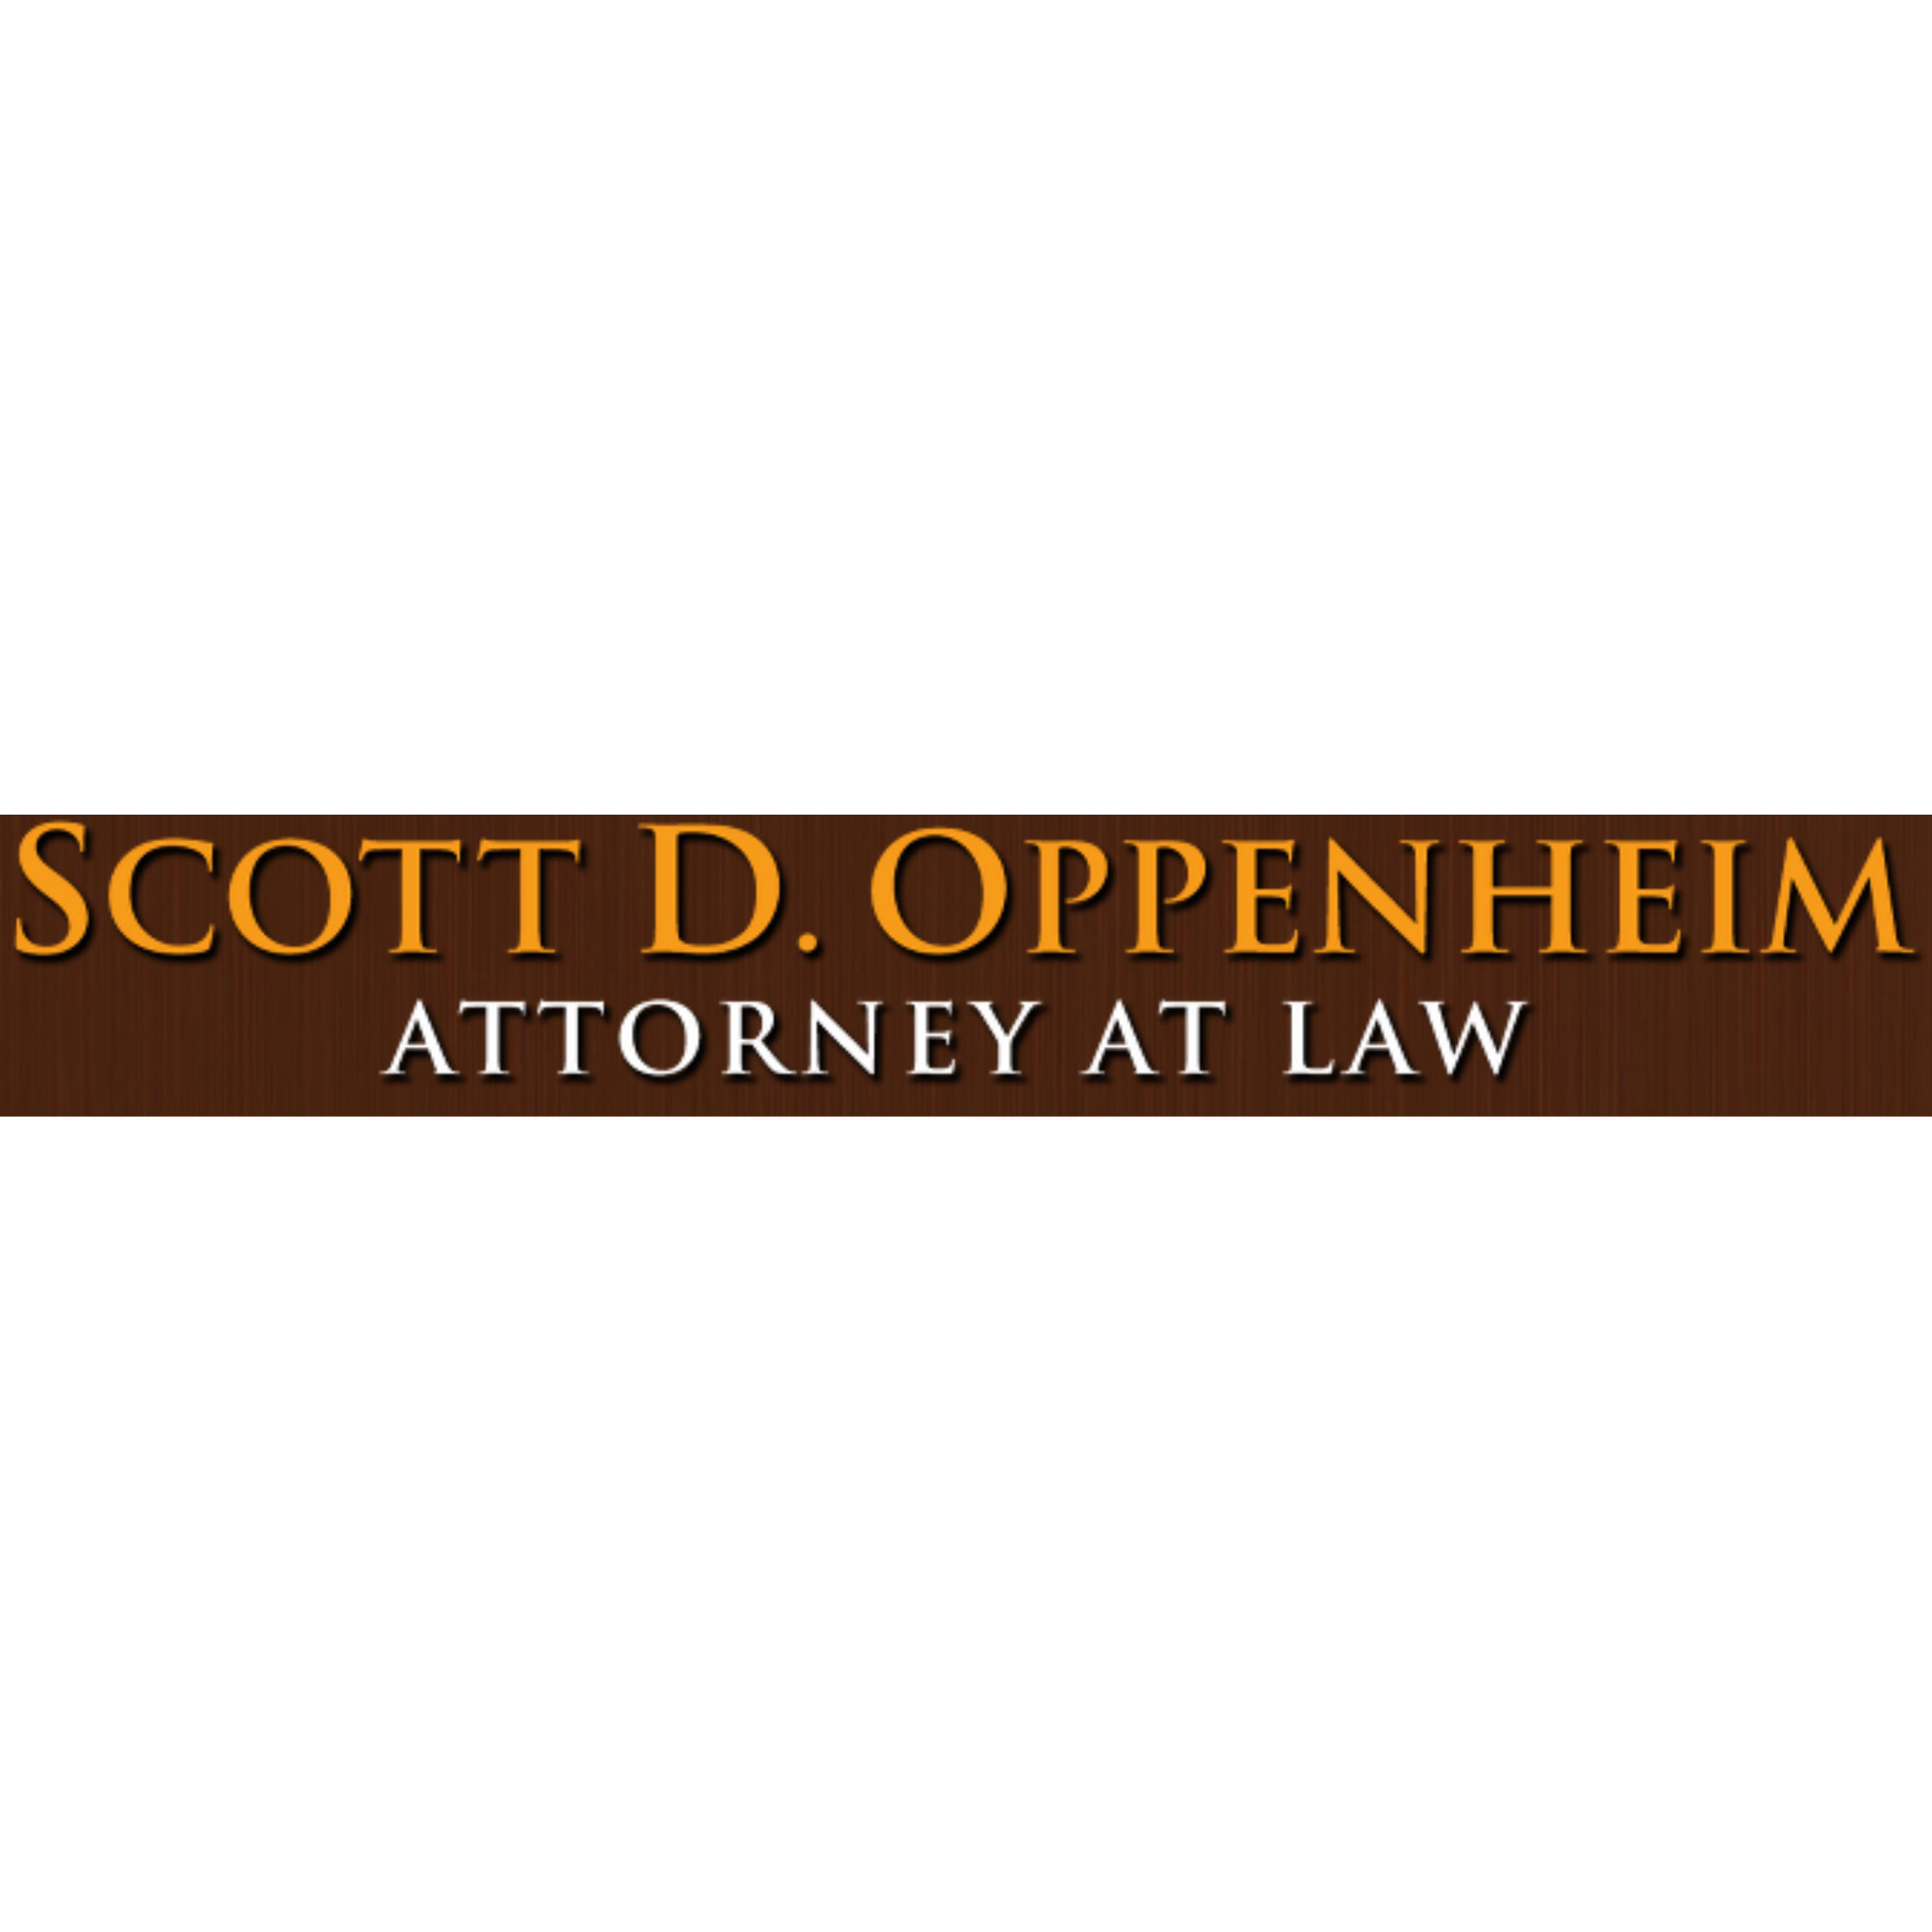 Scott D. Oppenheim Attorney At Law - Encino, CA - Attorneys